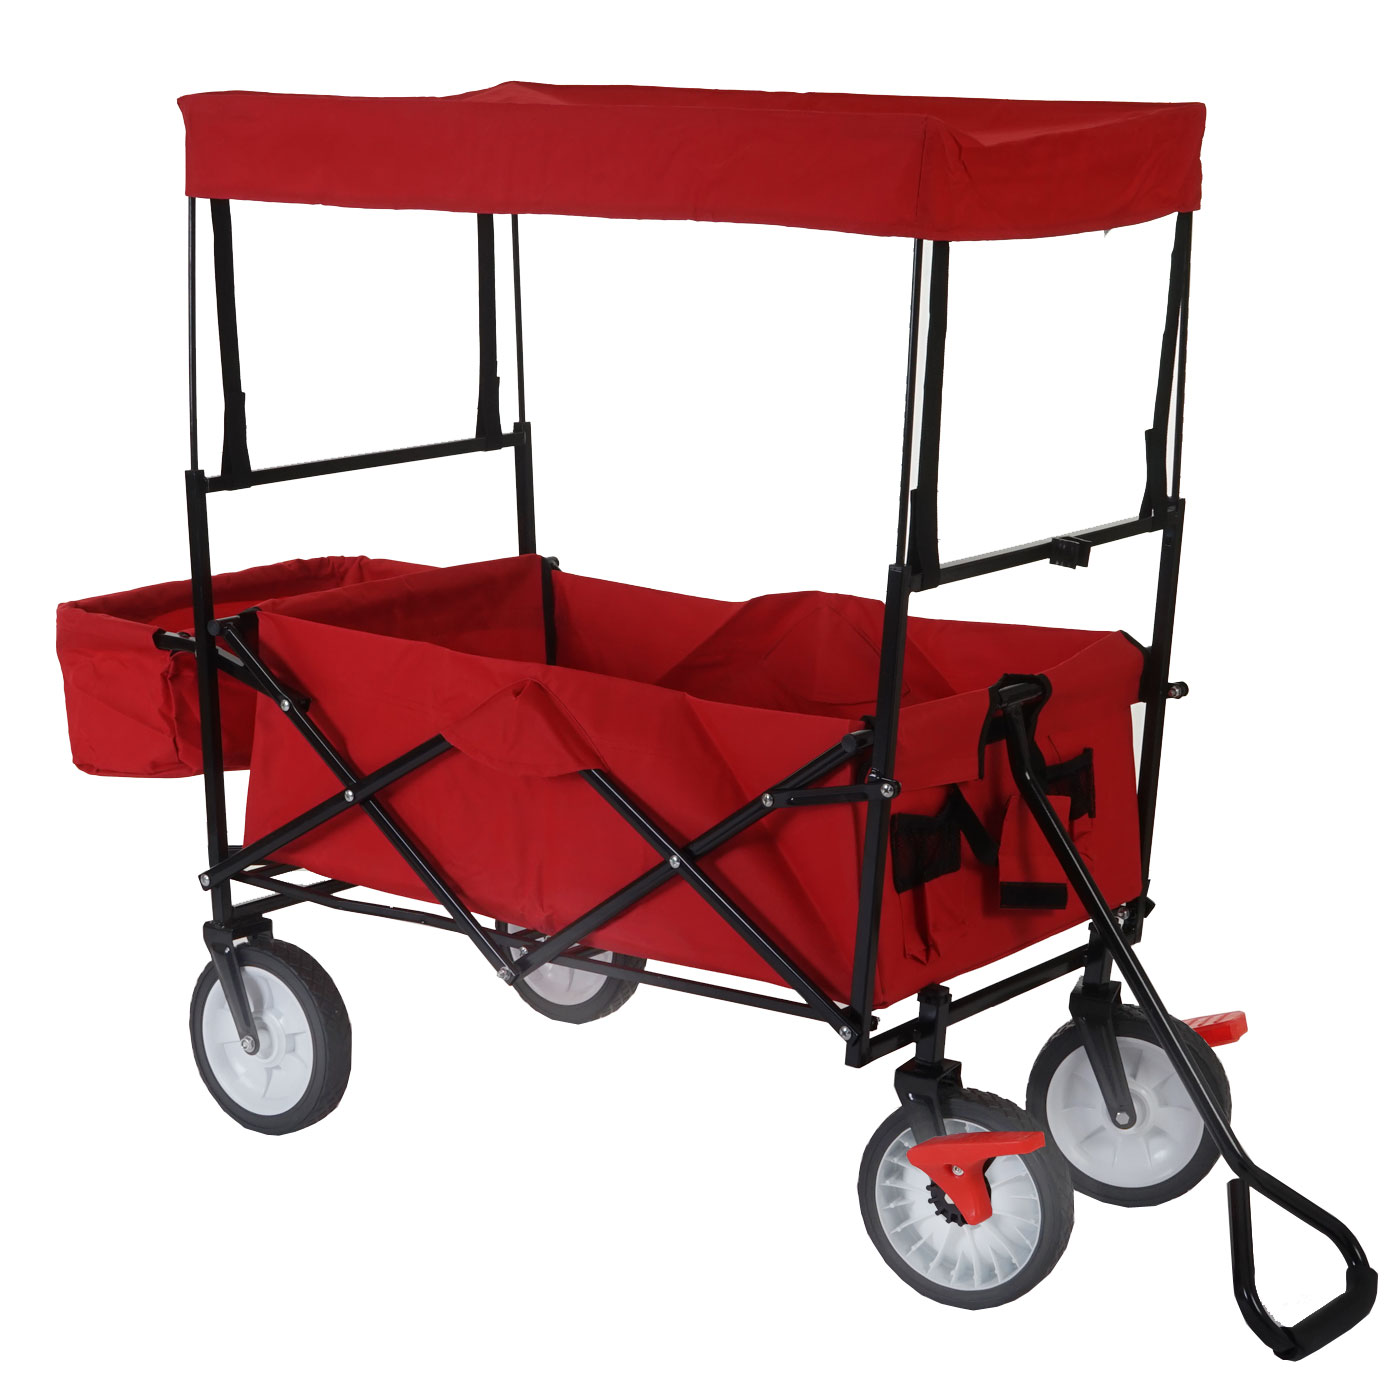 bollerwagen bury handwagen transportwagen inkl dach faltbar rot mit bremse ebay. Black Bedroom Furniture Sets. Home Design Ideas